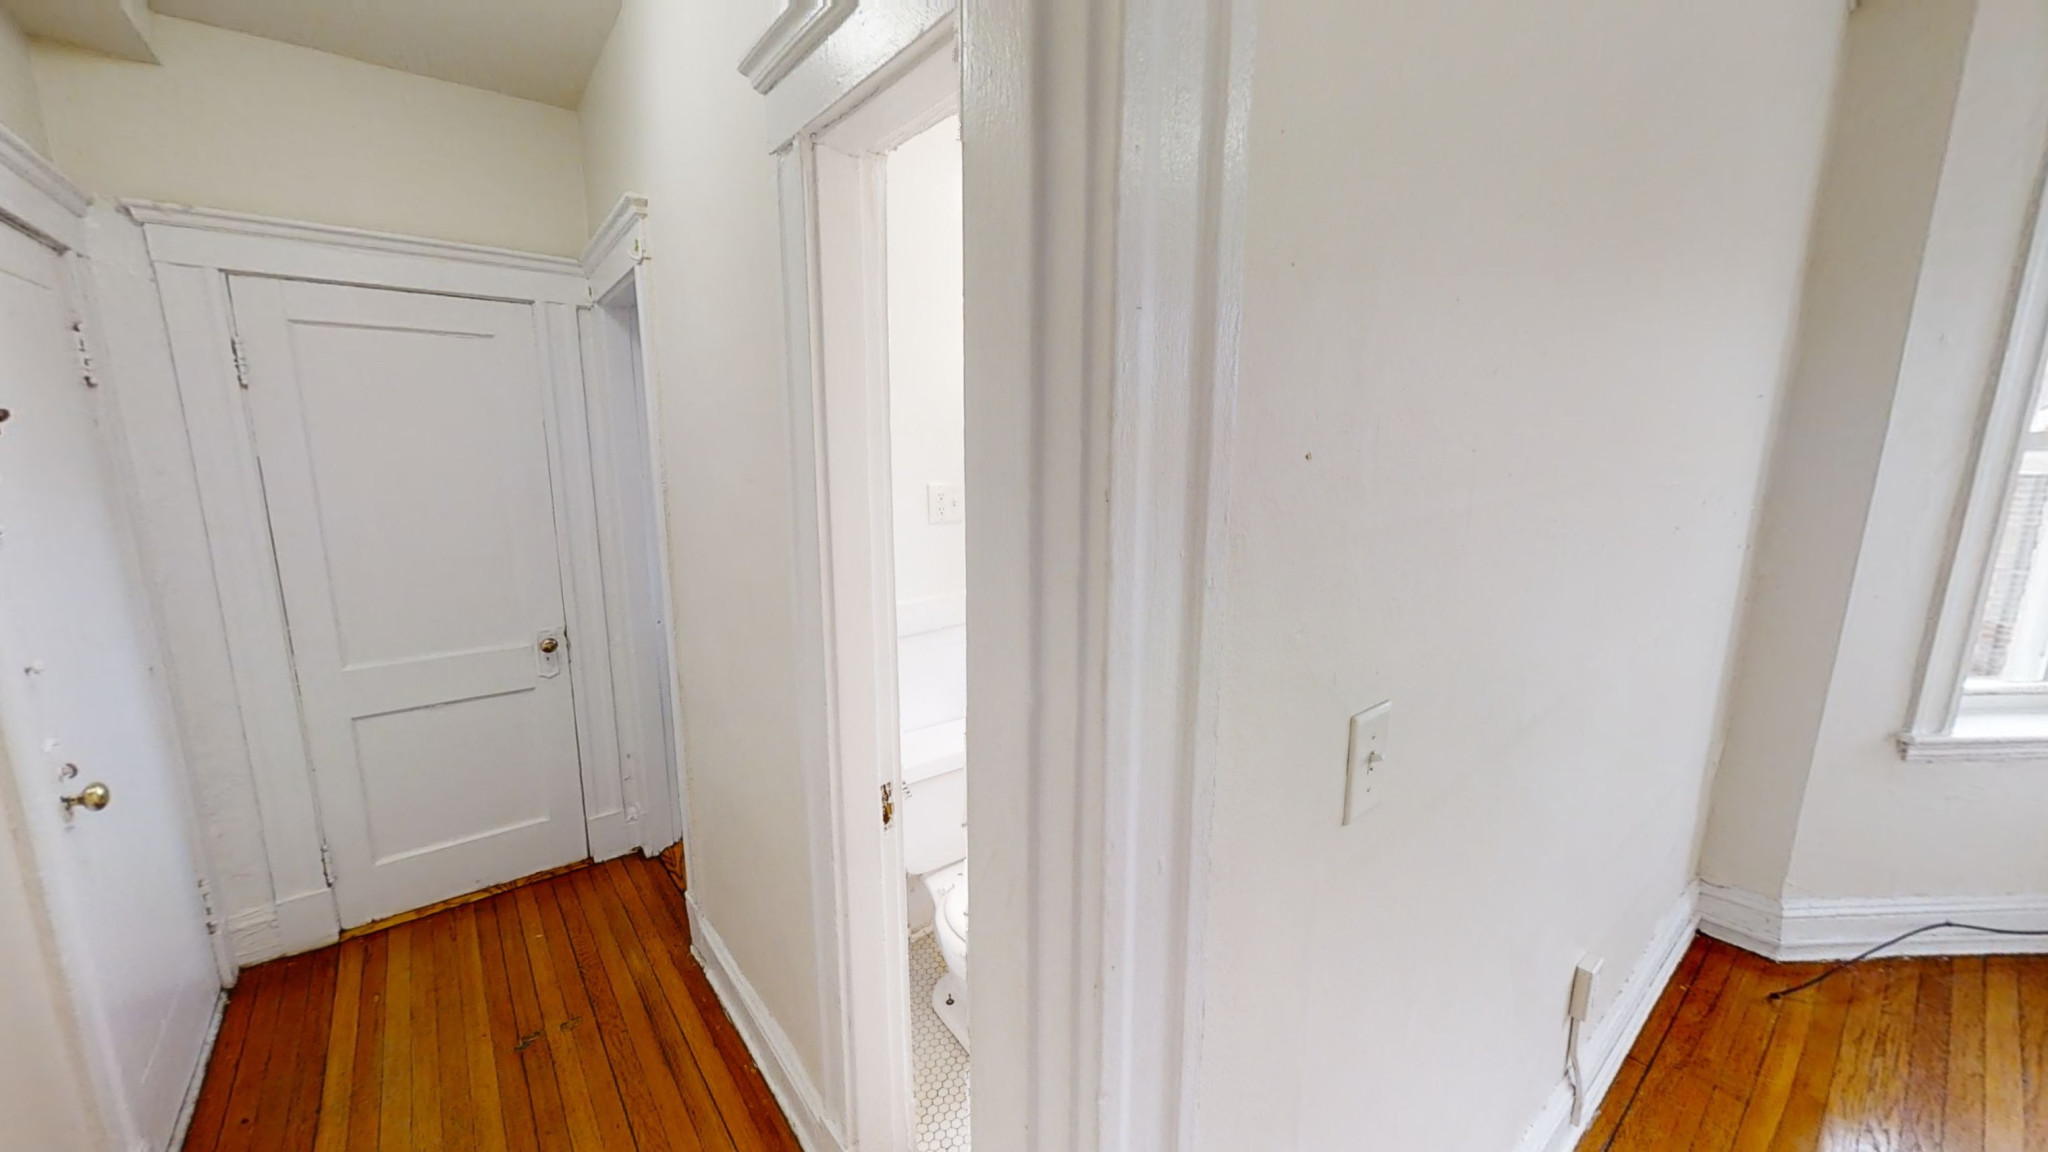 Studio, 1 Bath apartment in Boston, Fenway for $1,450